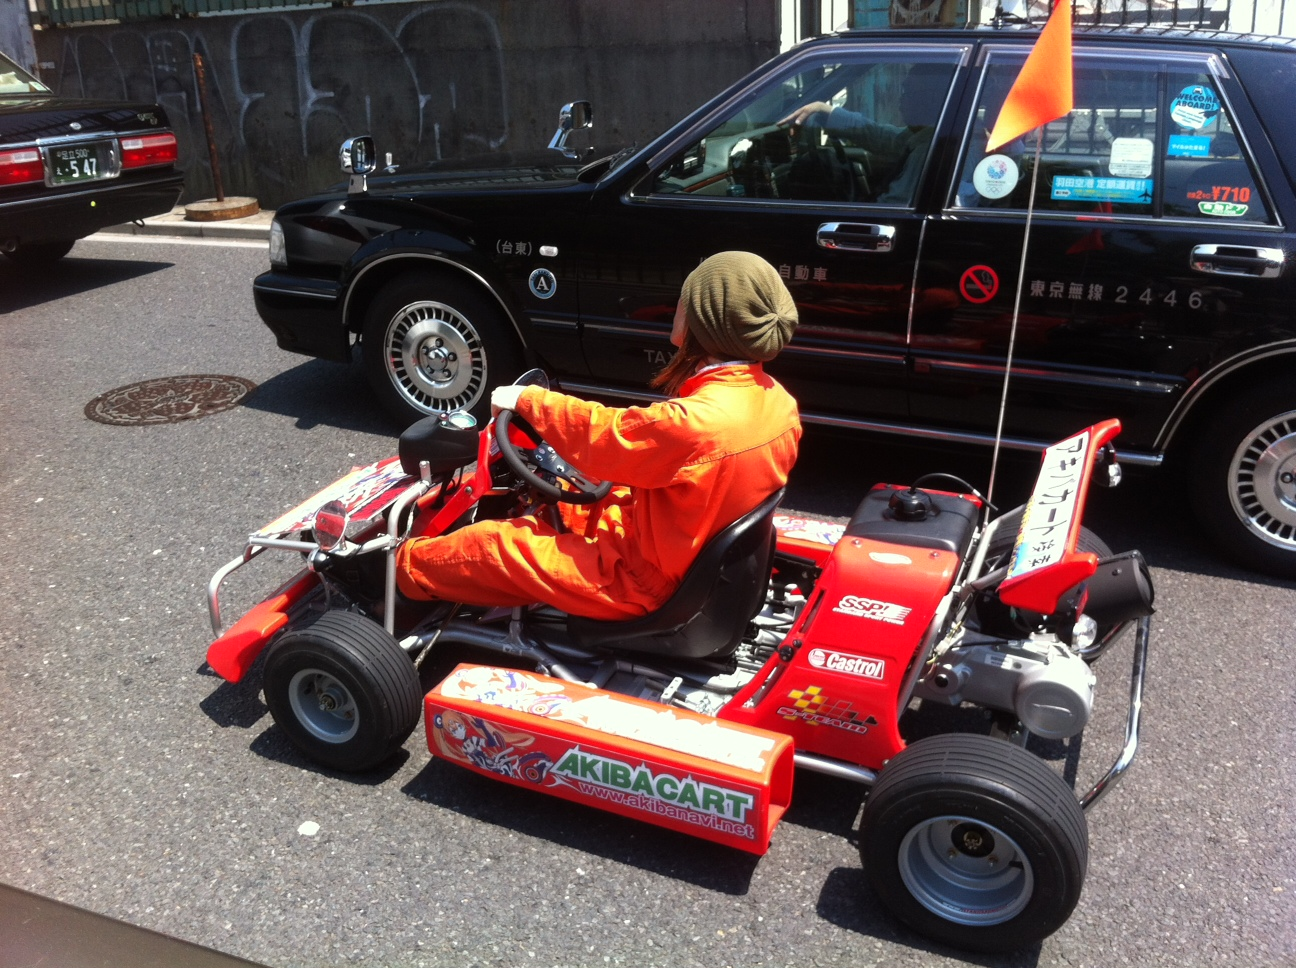 Karting on the streets of Ueno, Tokyo.